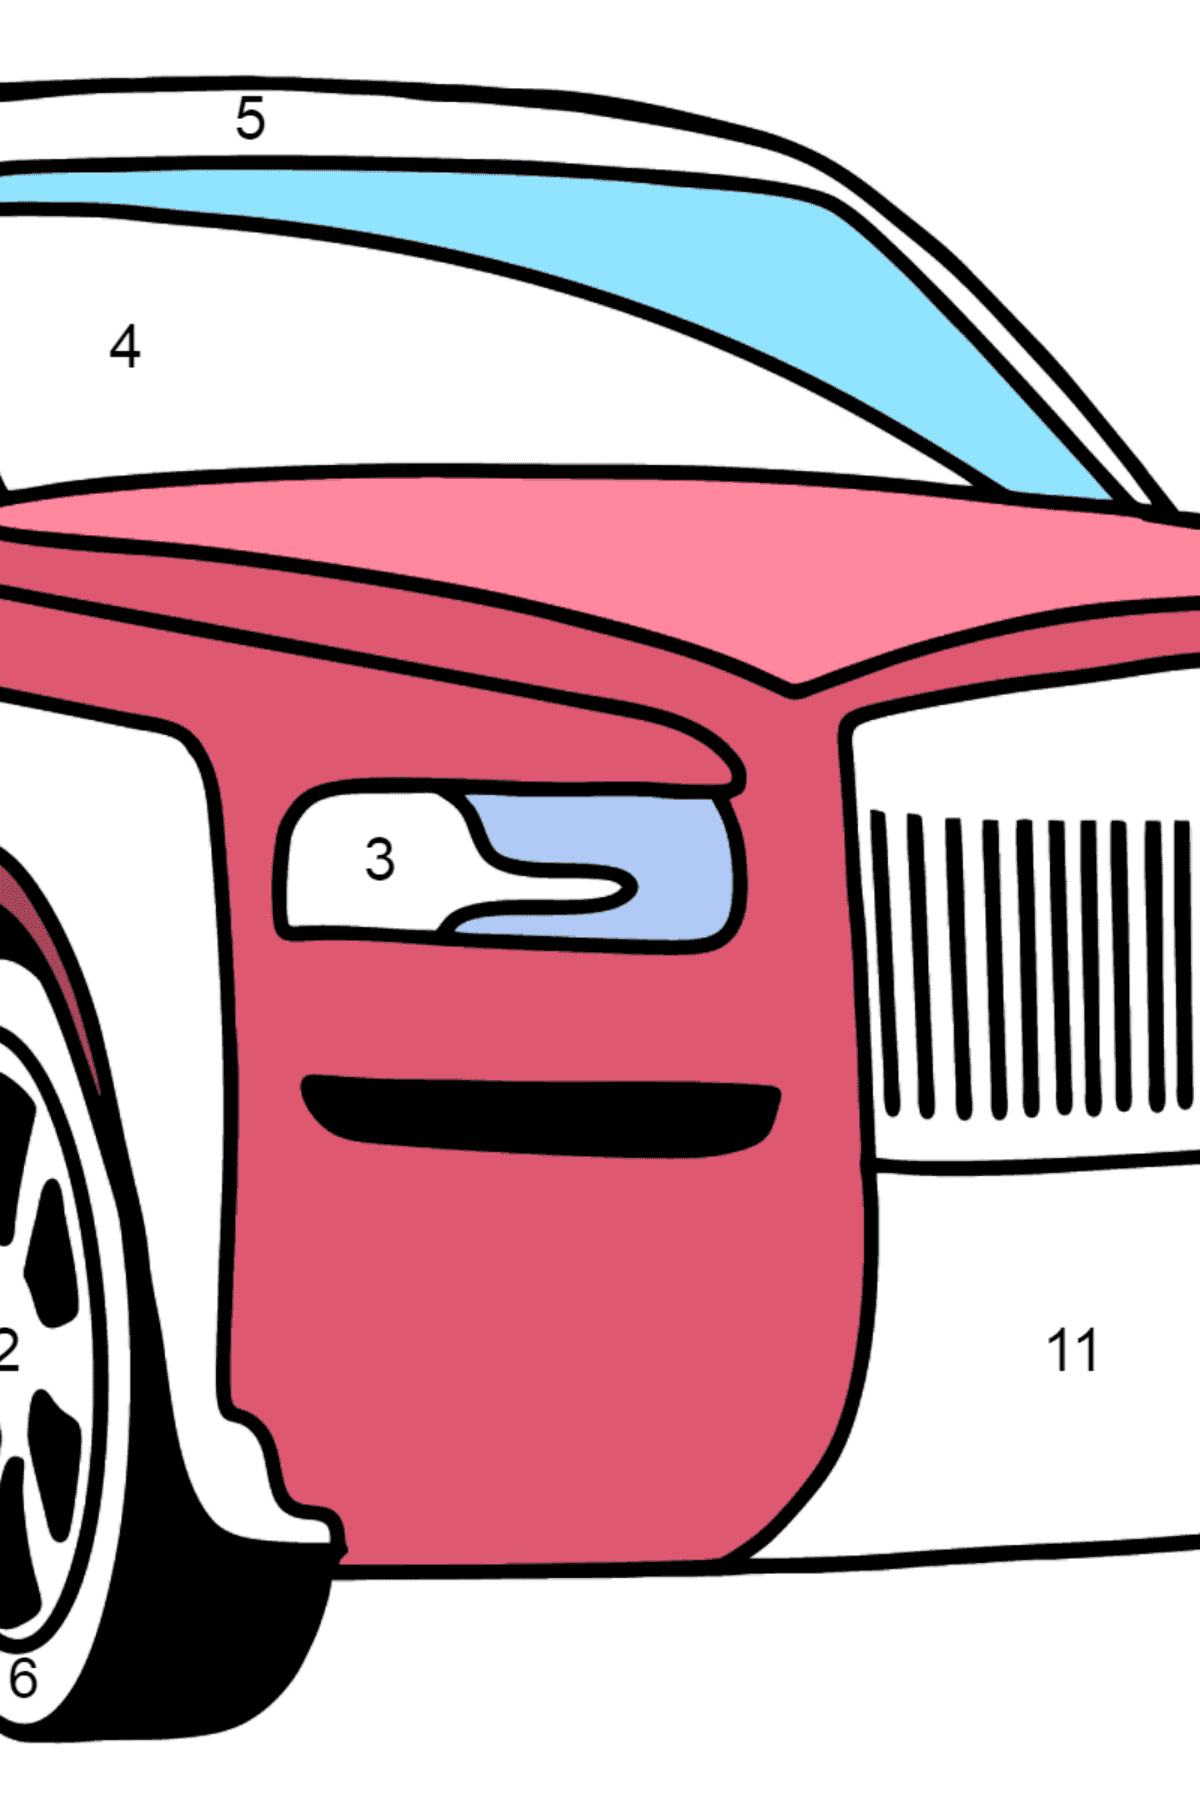 Rolls Royce Cullinan Car coloring page - Coloring by Numbers for Kids